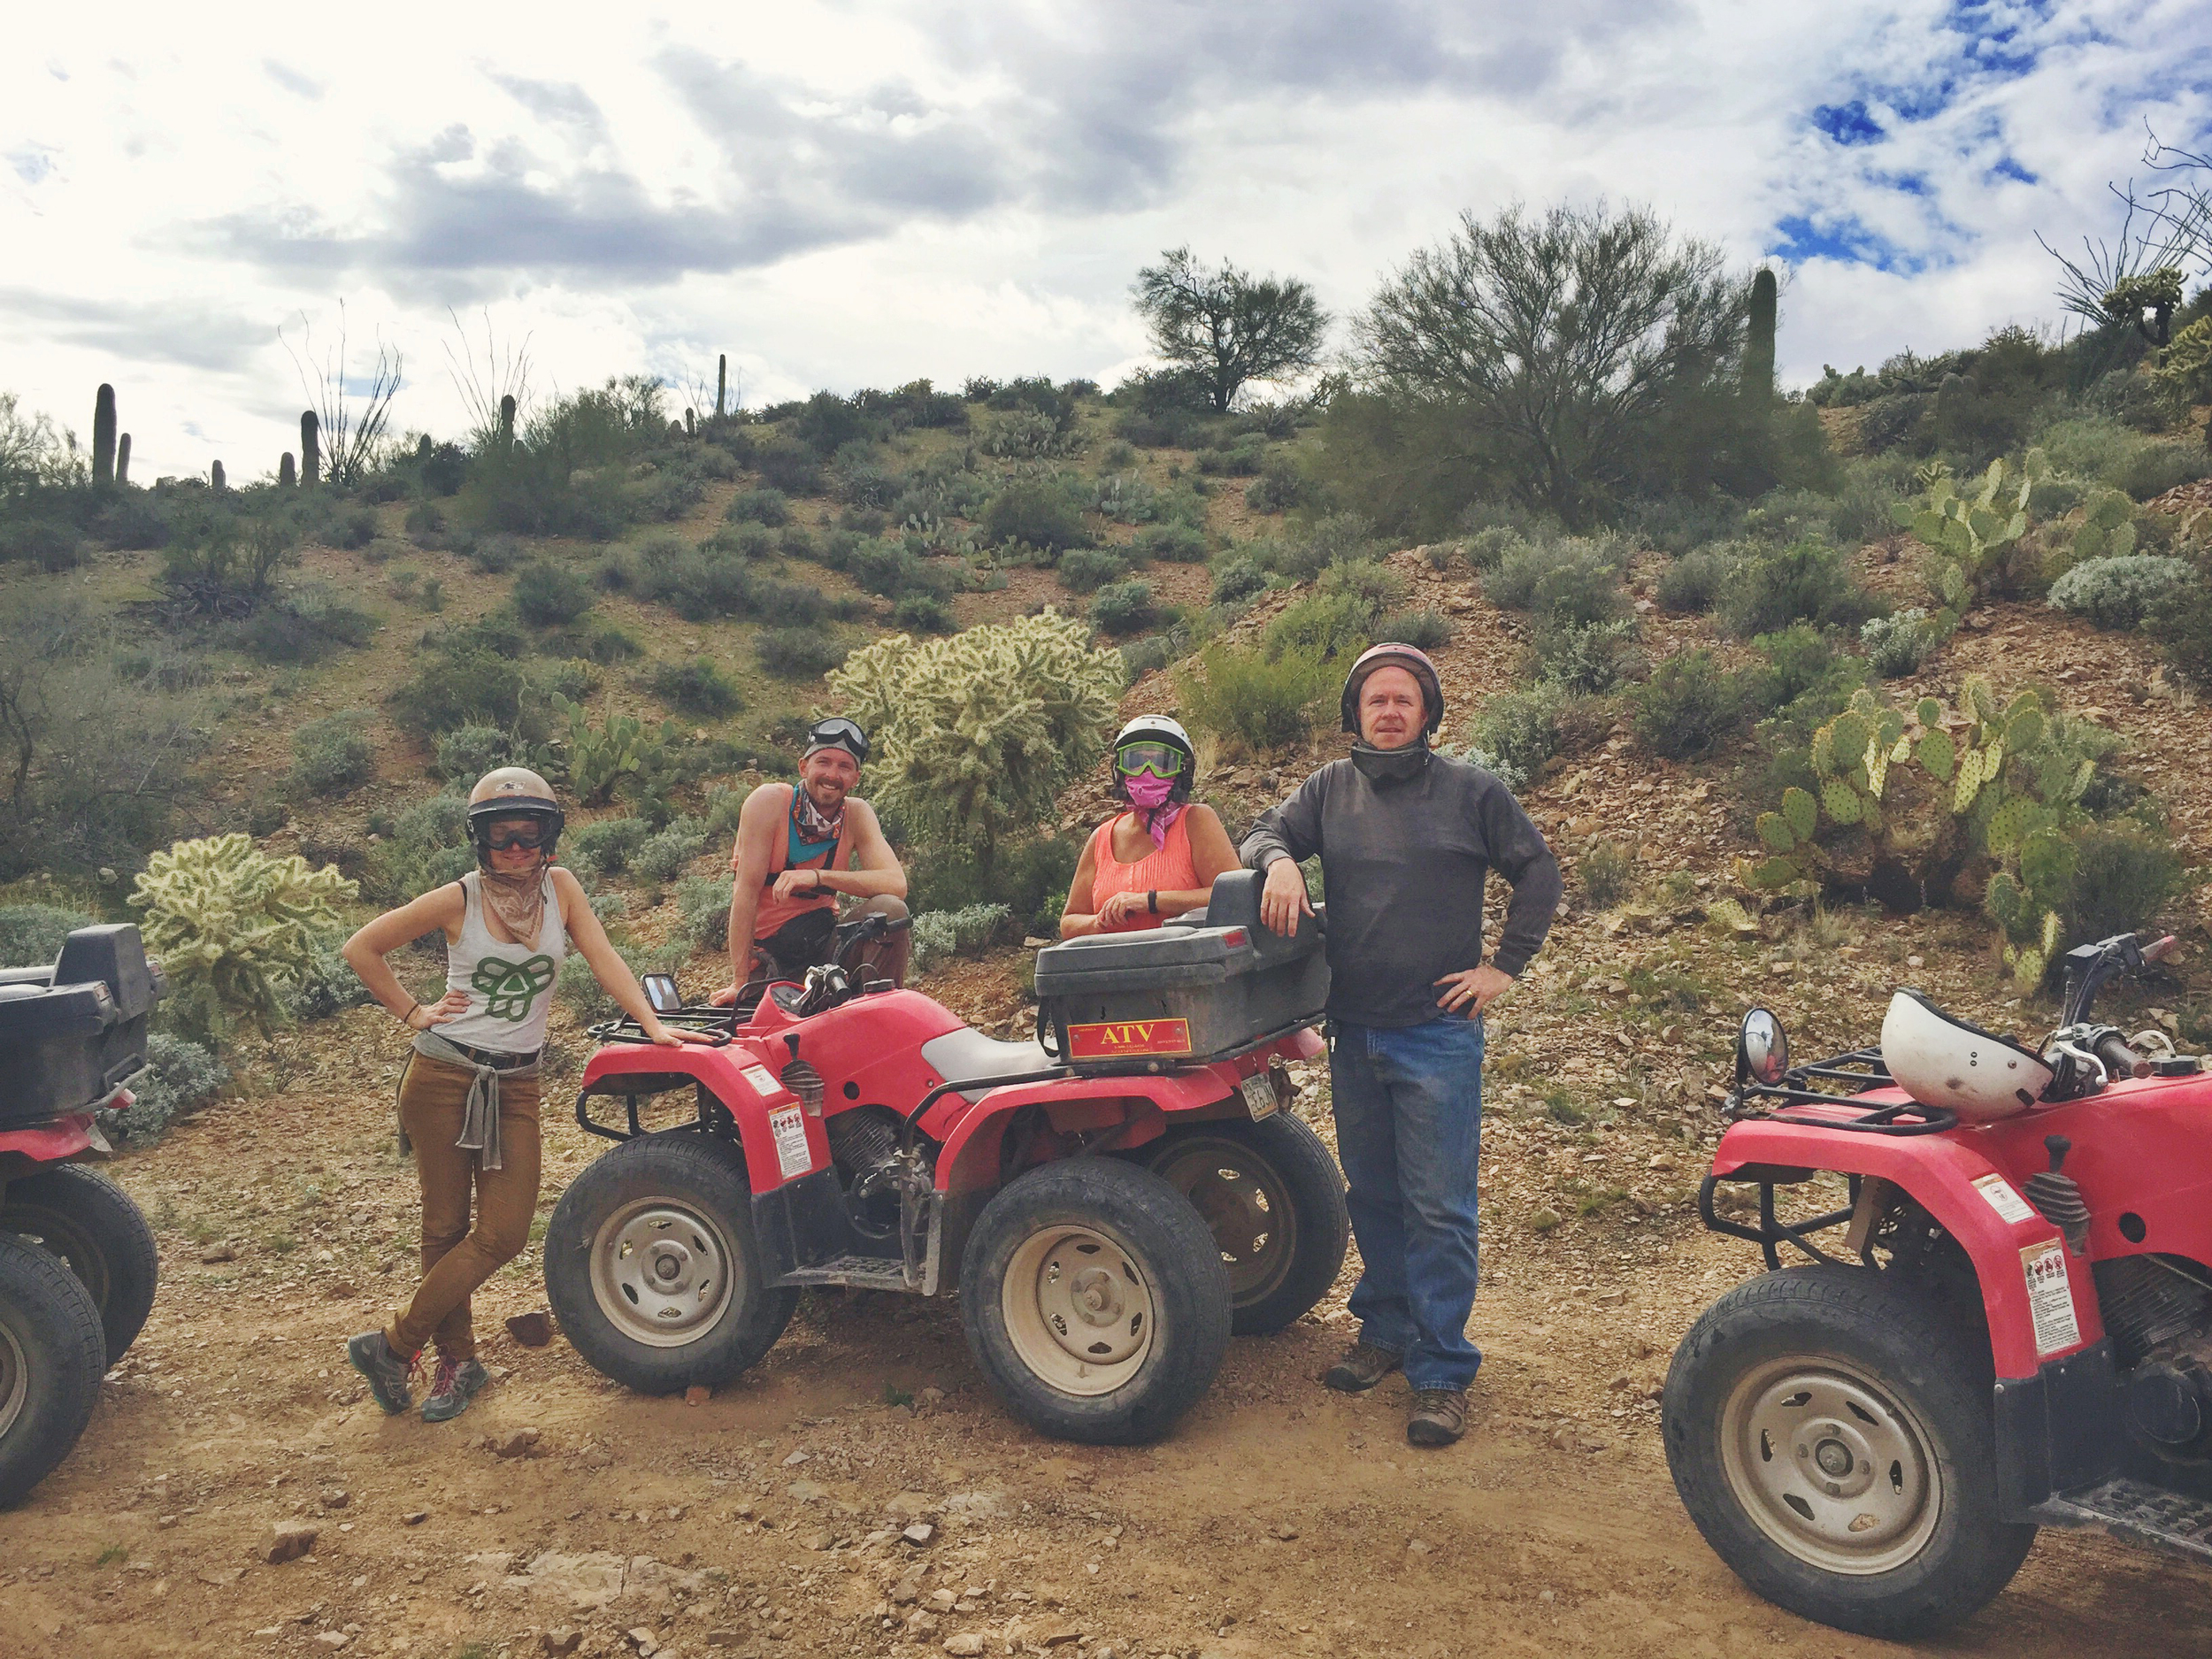 A great day spent adventuring via ATV through Box Canyon - getting dirty in the desert